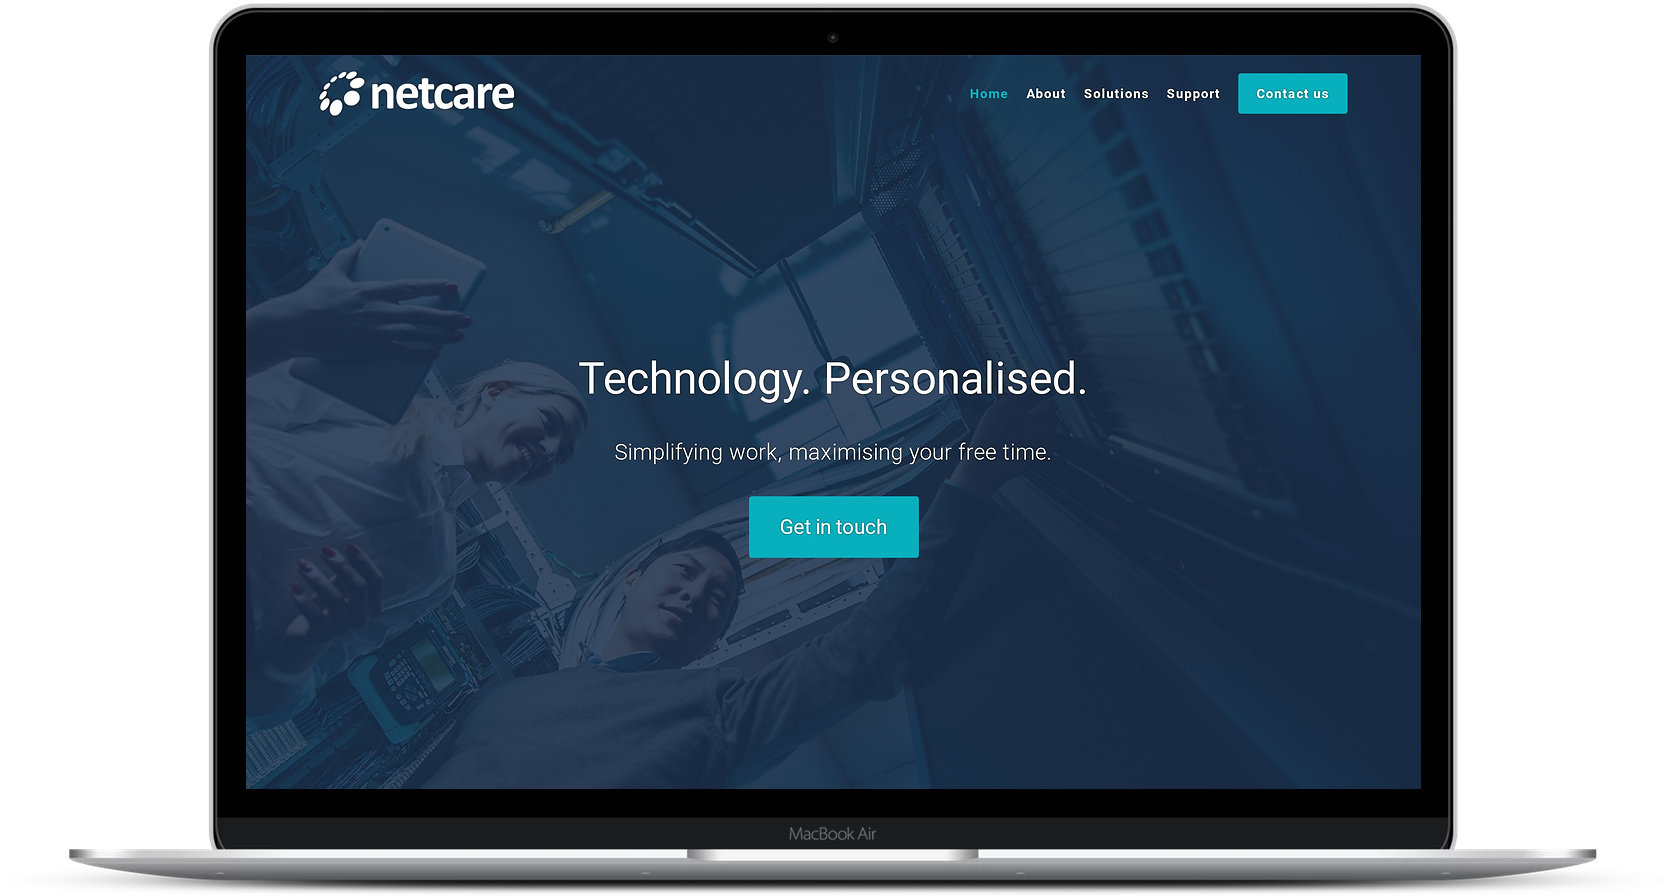 About Netcare - Netcare are an IT services provider with a strong base in the medical sector servicing businesses across the Auckland region since 1999.Talk to Netcare if you want an IT provider that takes customer service seriously.